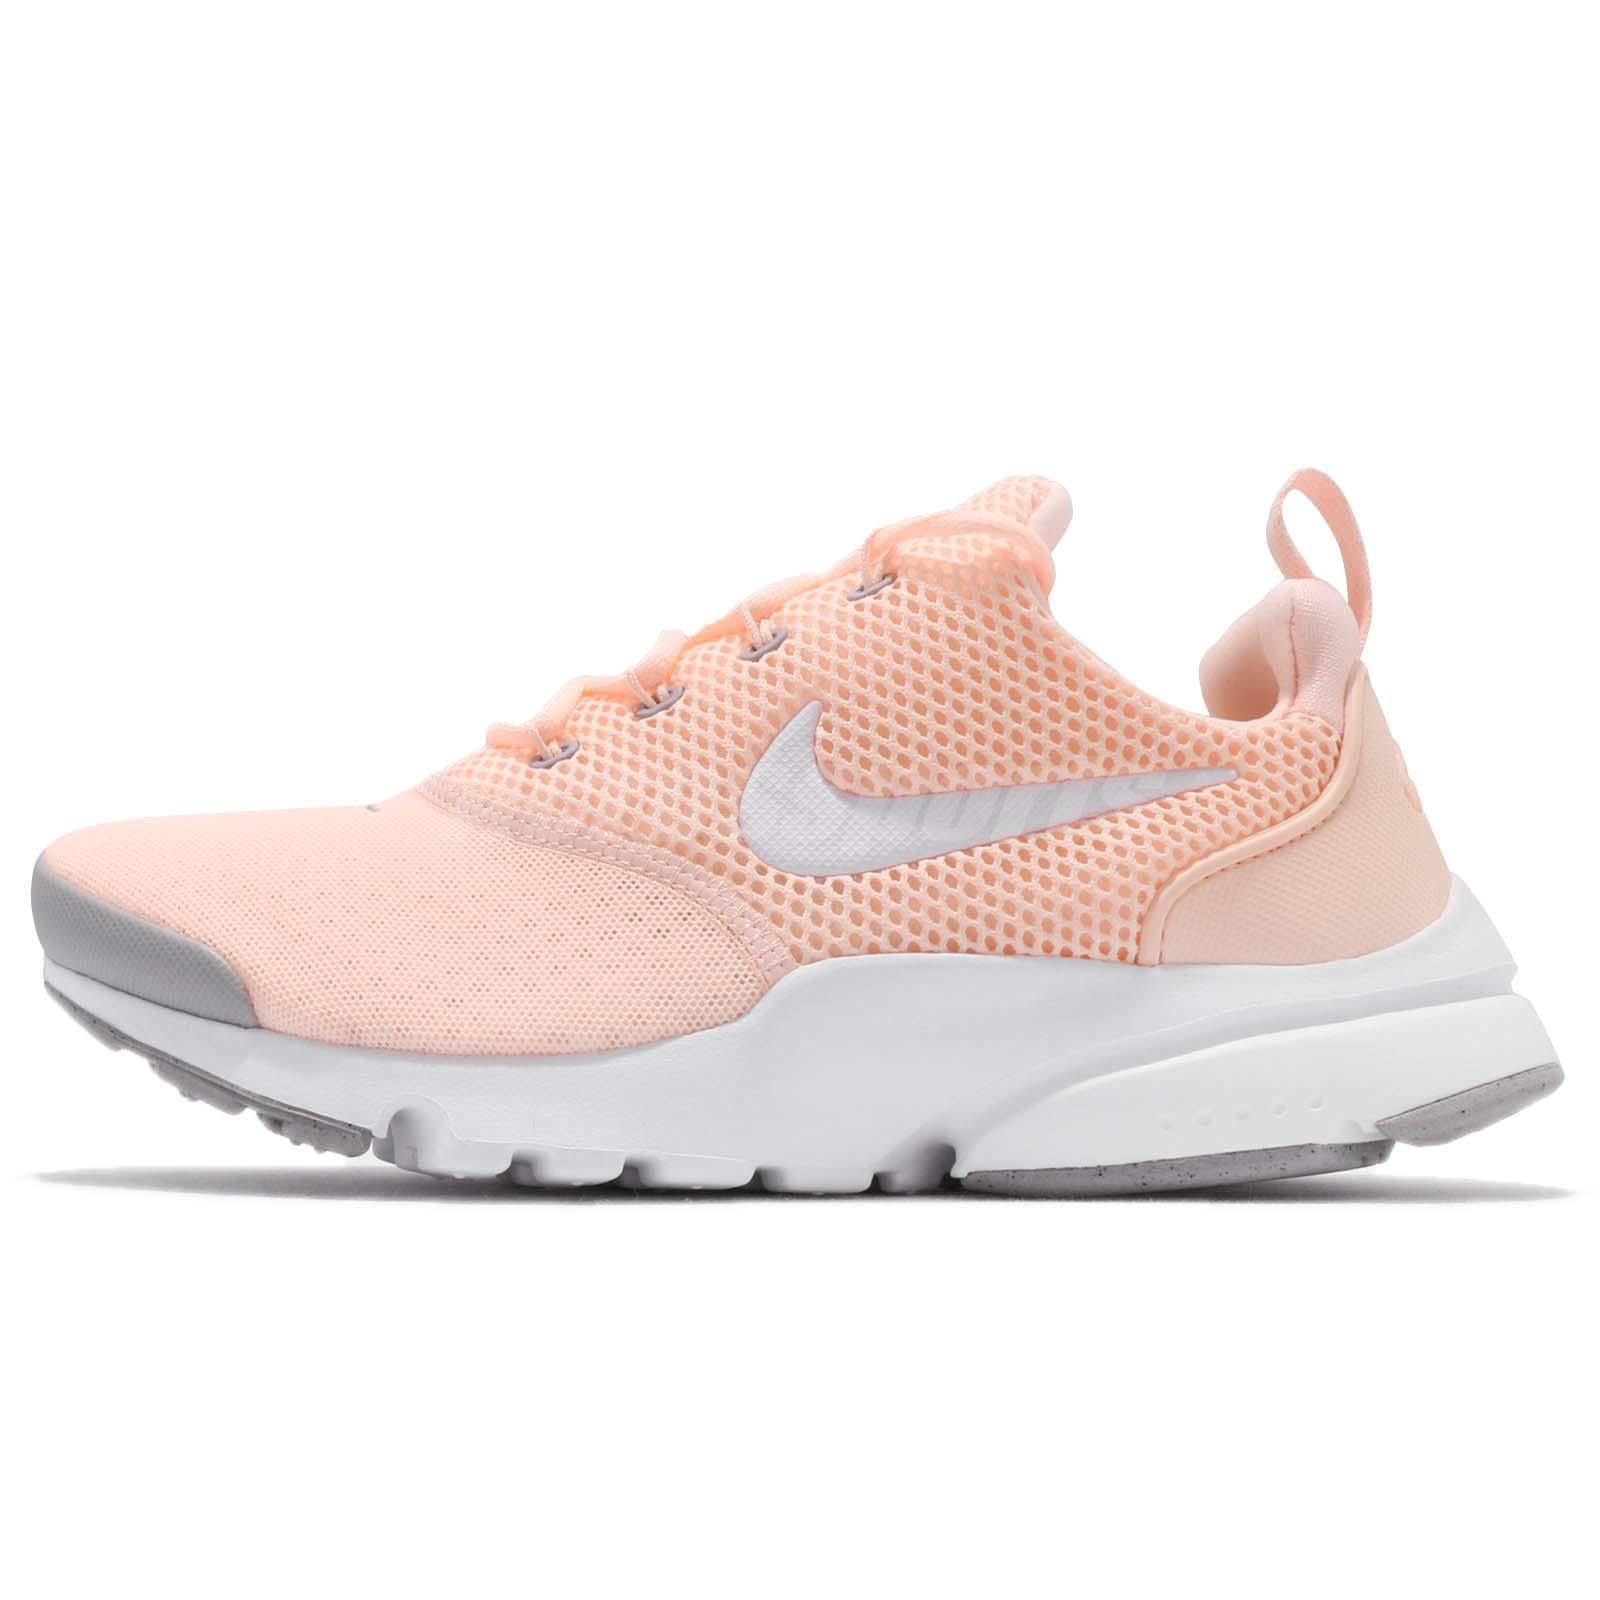 7cbfe3159d31b Nike Presto Fly GS Crimson Tint White Kids Youth Women Running Shoes 913967- 800